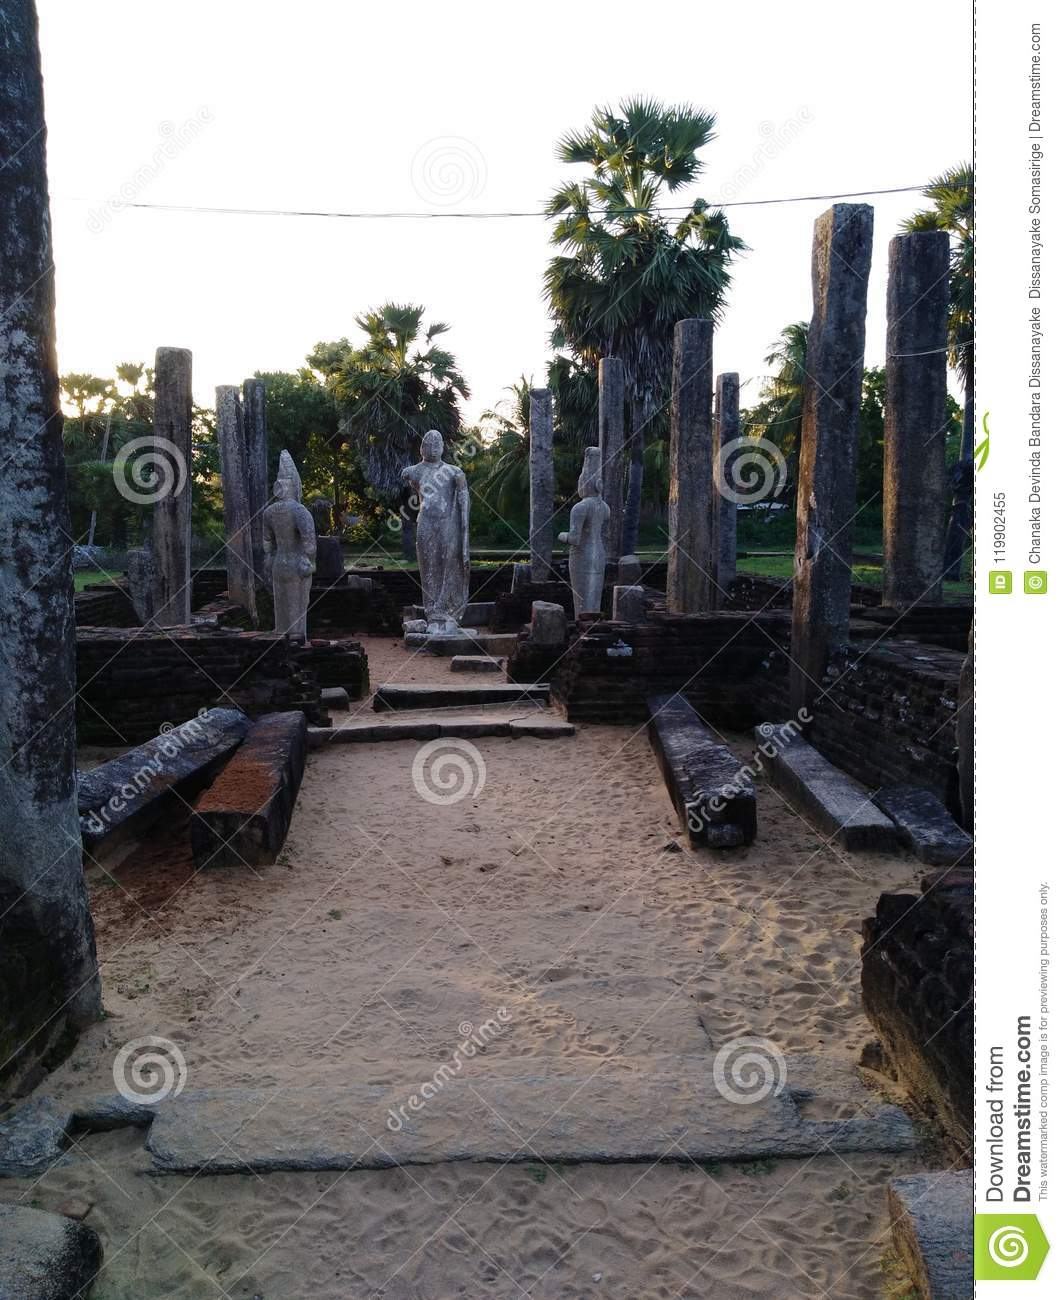 Historical srilankan ruins of a Buddhist stratus build on the sandy surface